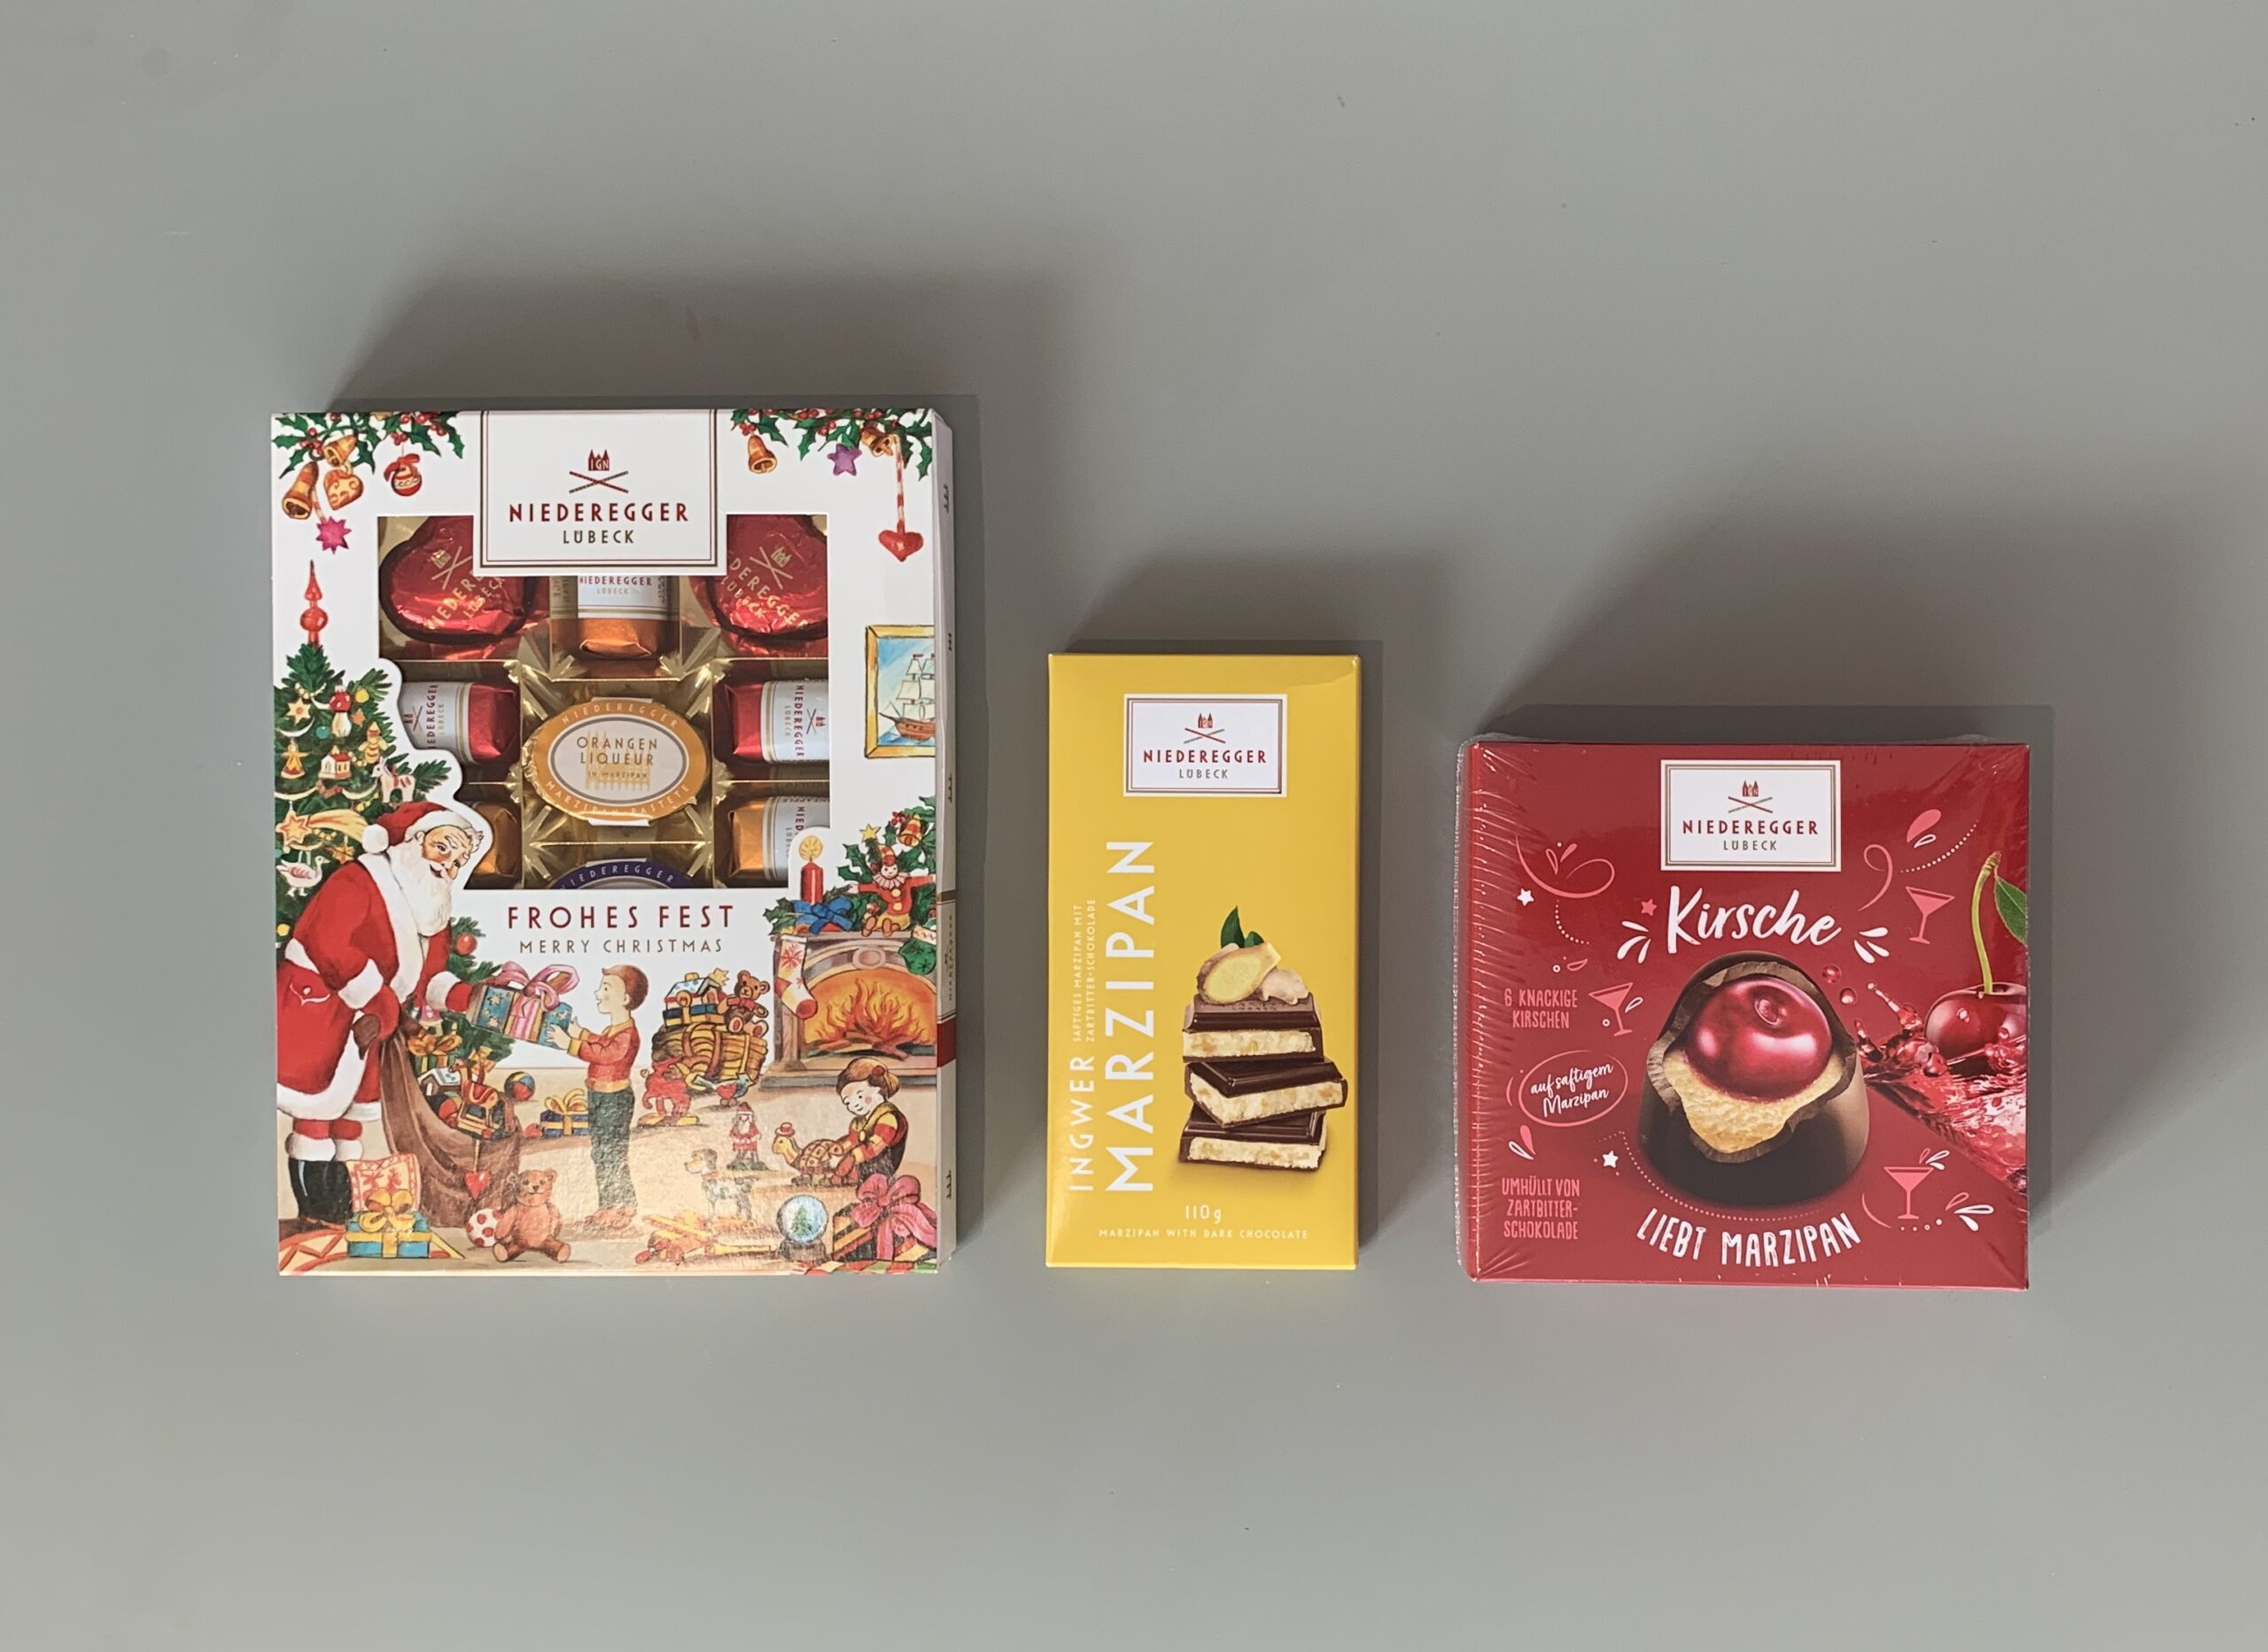 Niederegger Lübeck: Kirsche and Marzipan, Marzipan with Dark Chocolate and Merry Christmas Box